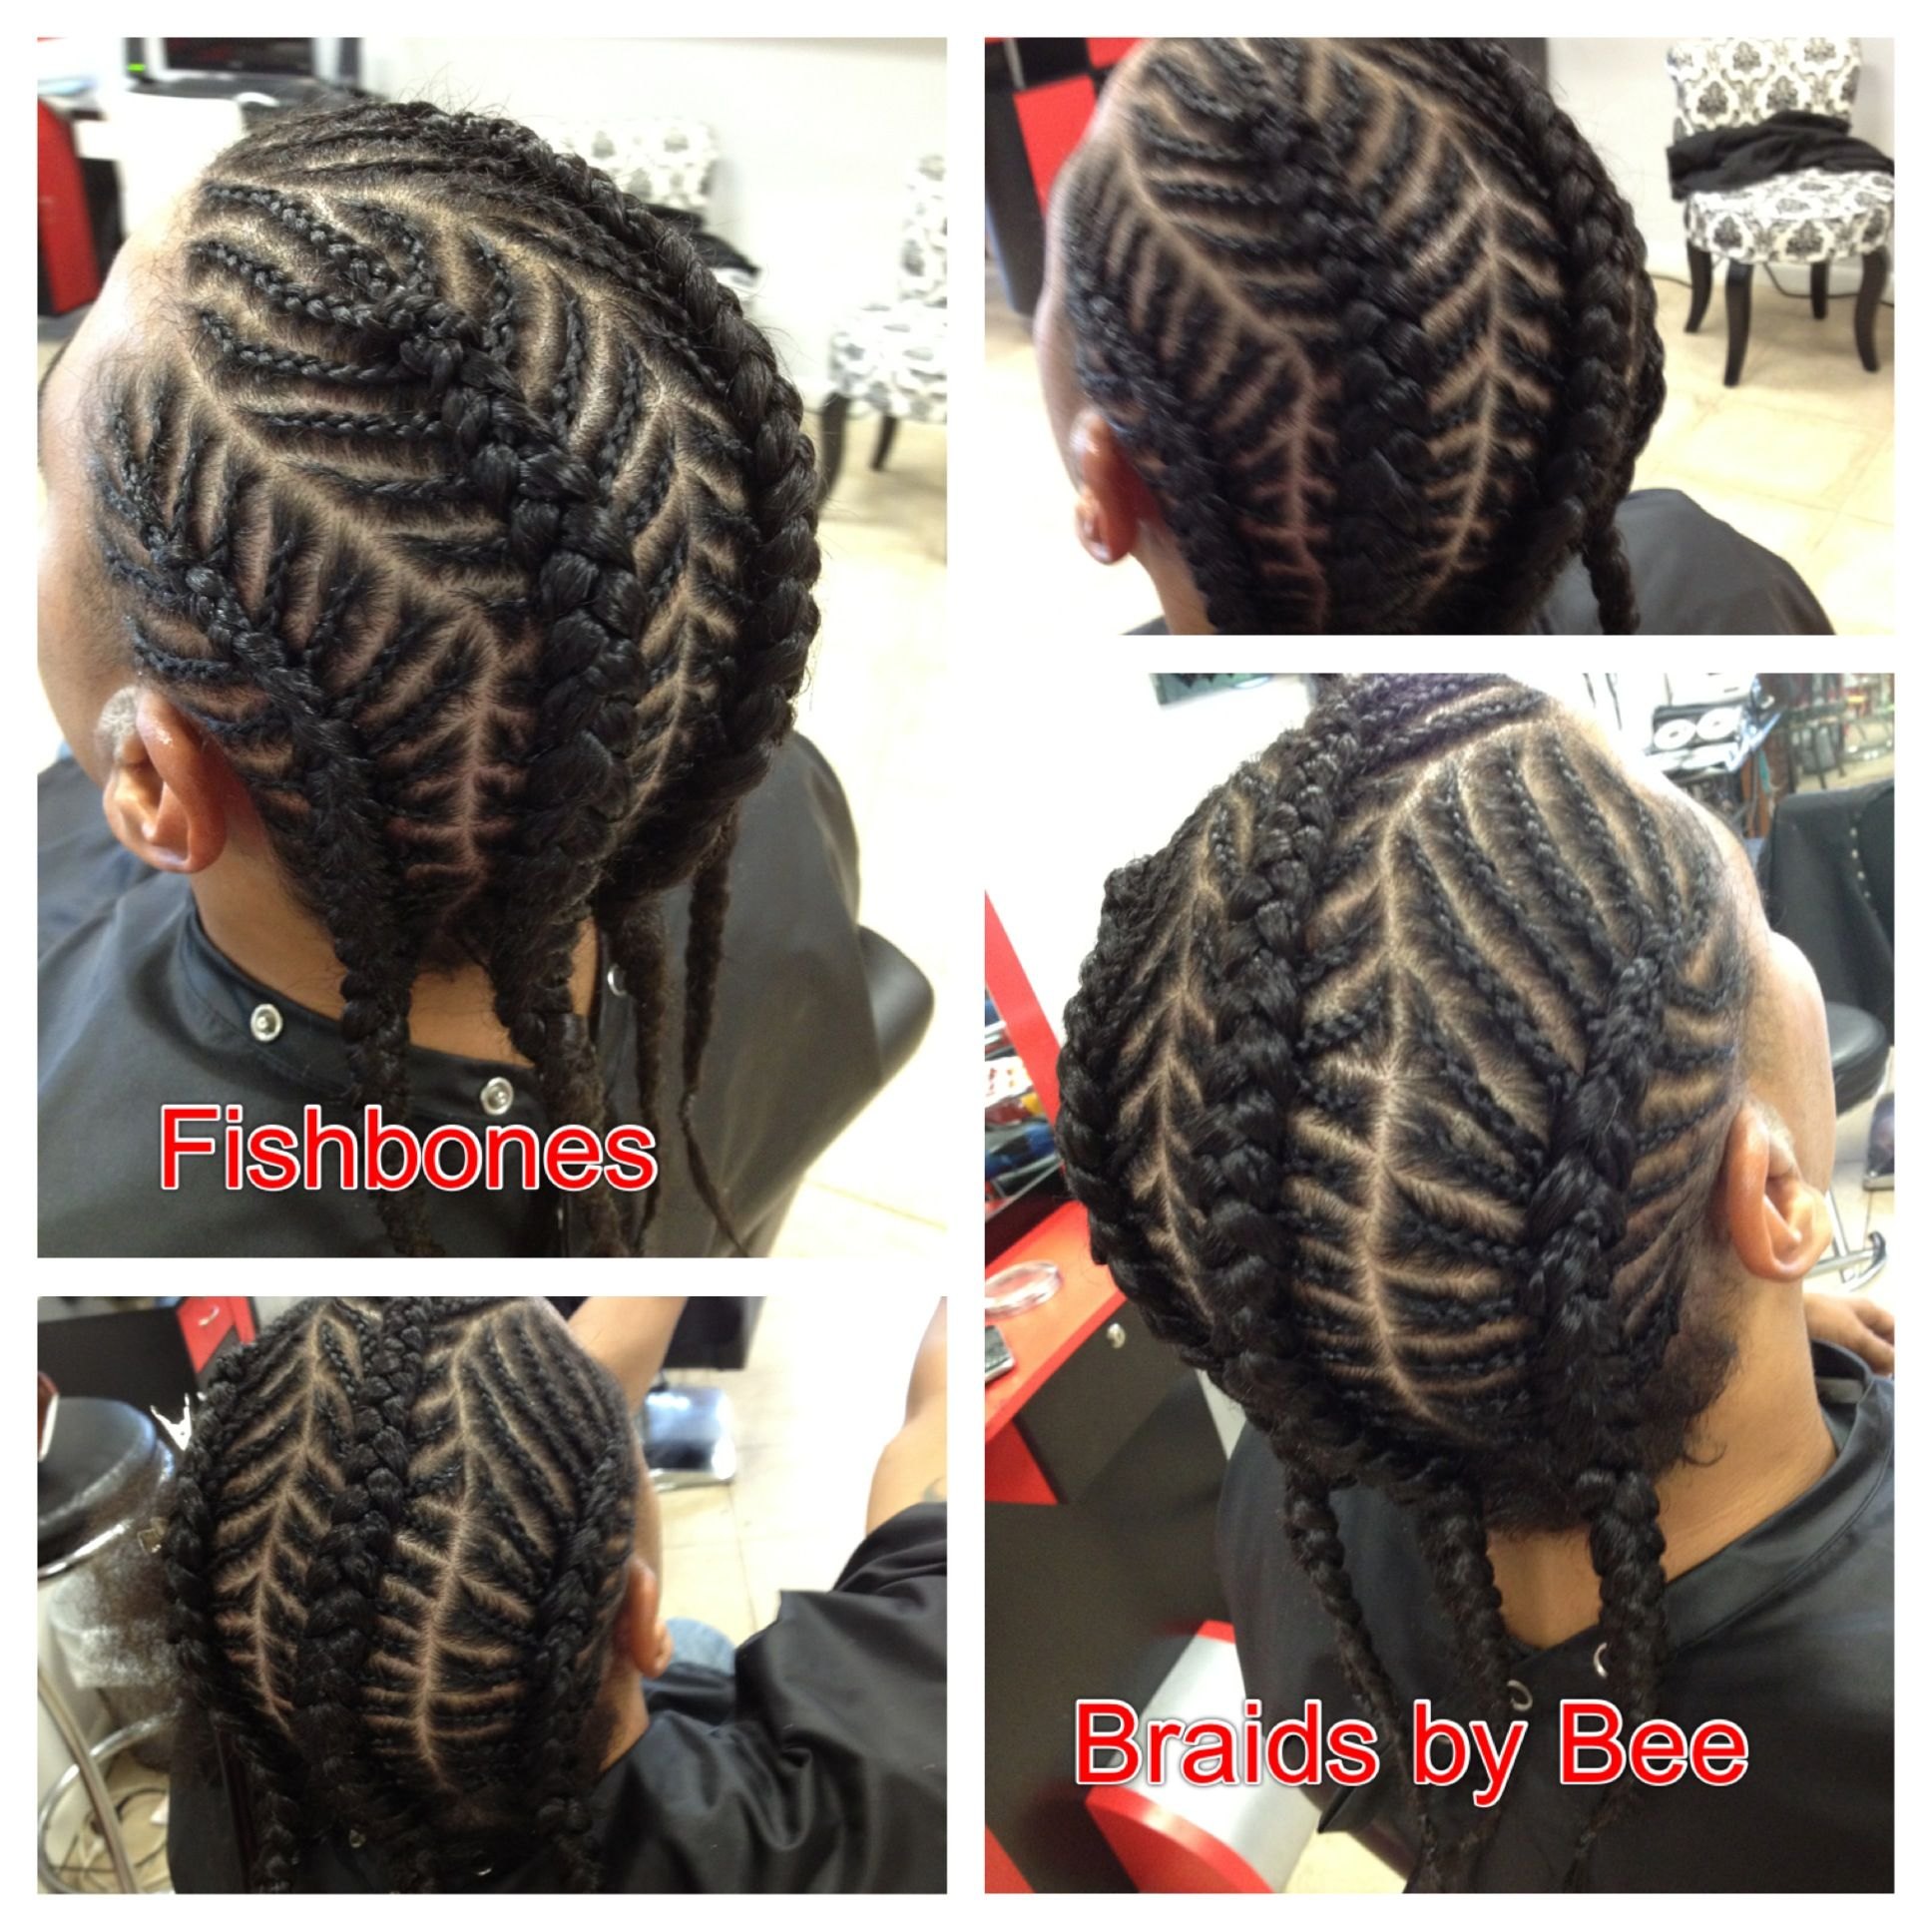 4 Fishbone Corn Row Braids With Natural Hair First Washed, Blown Out,  Grease